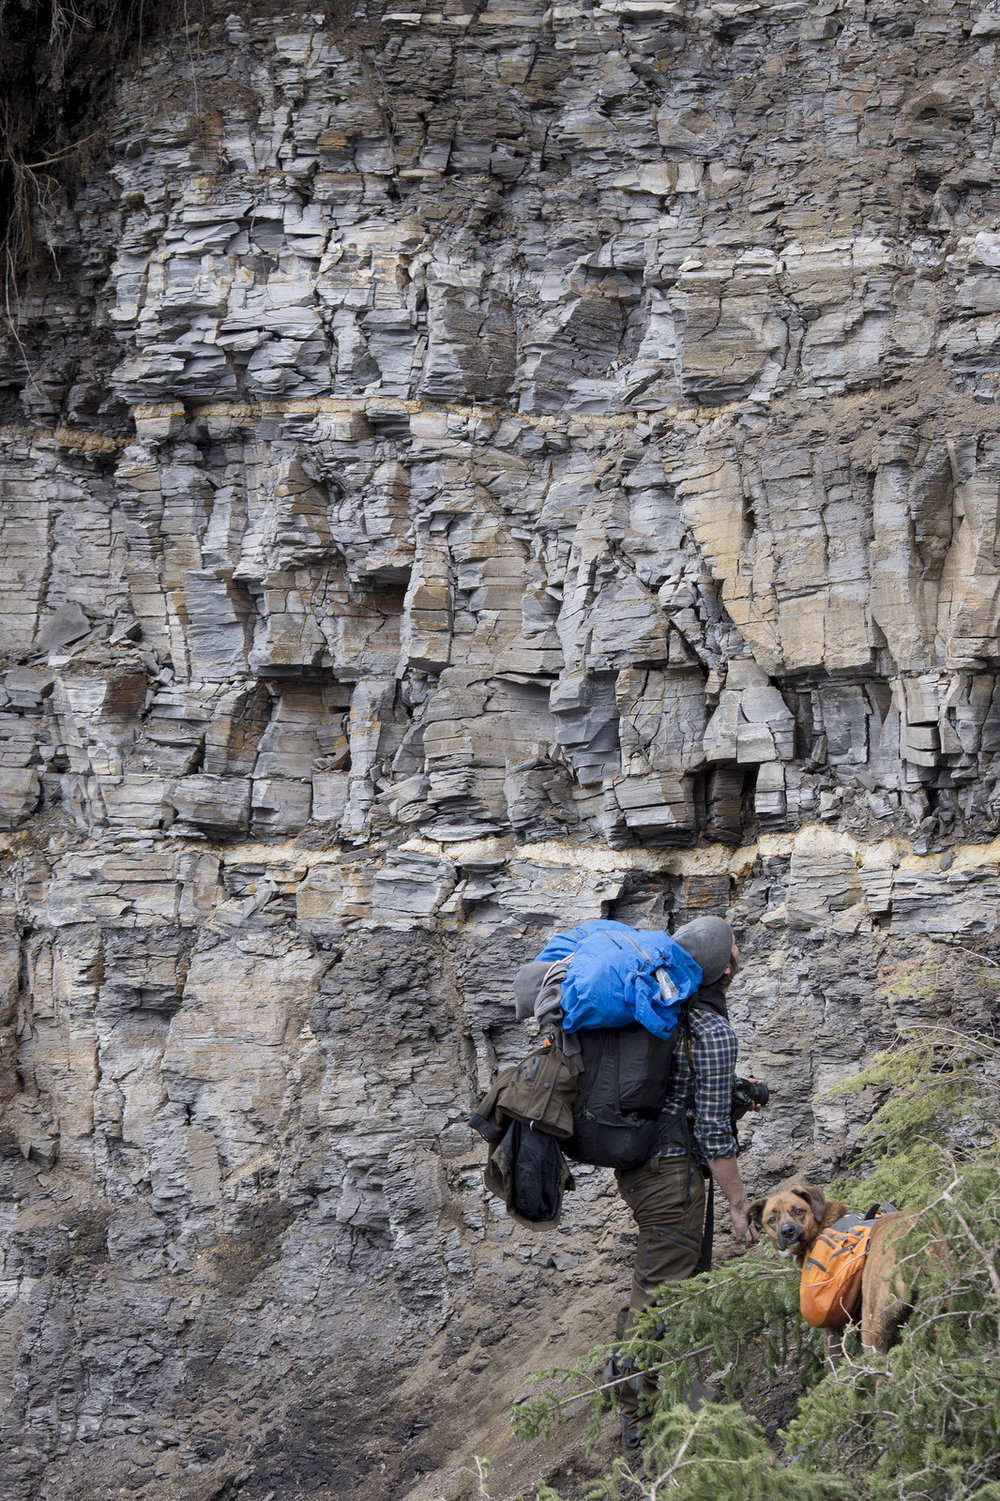 The Bainbridge River outcrop is the largest shale cliff we've seen to date. (Goodson)